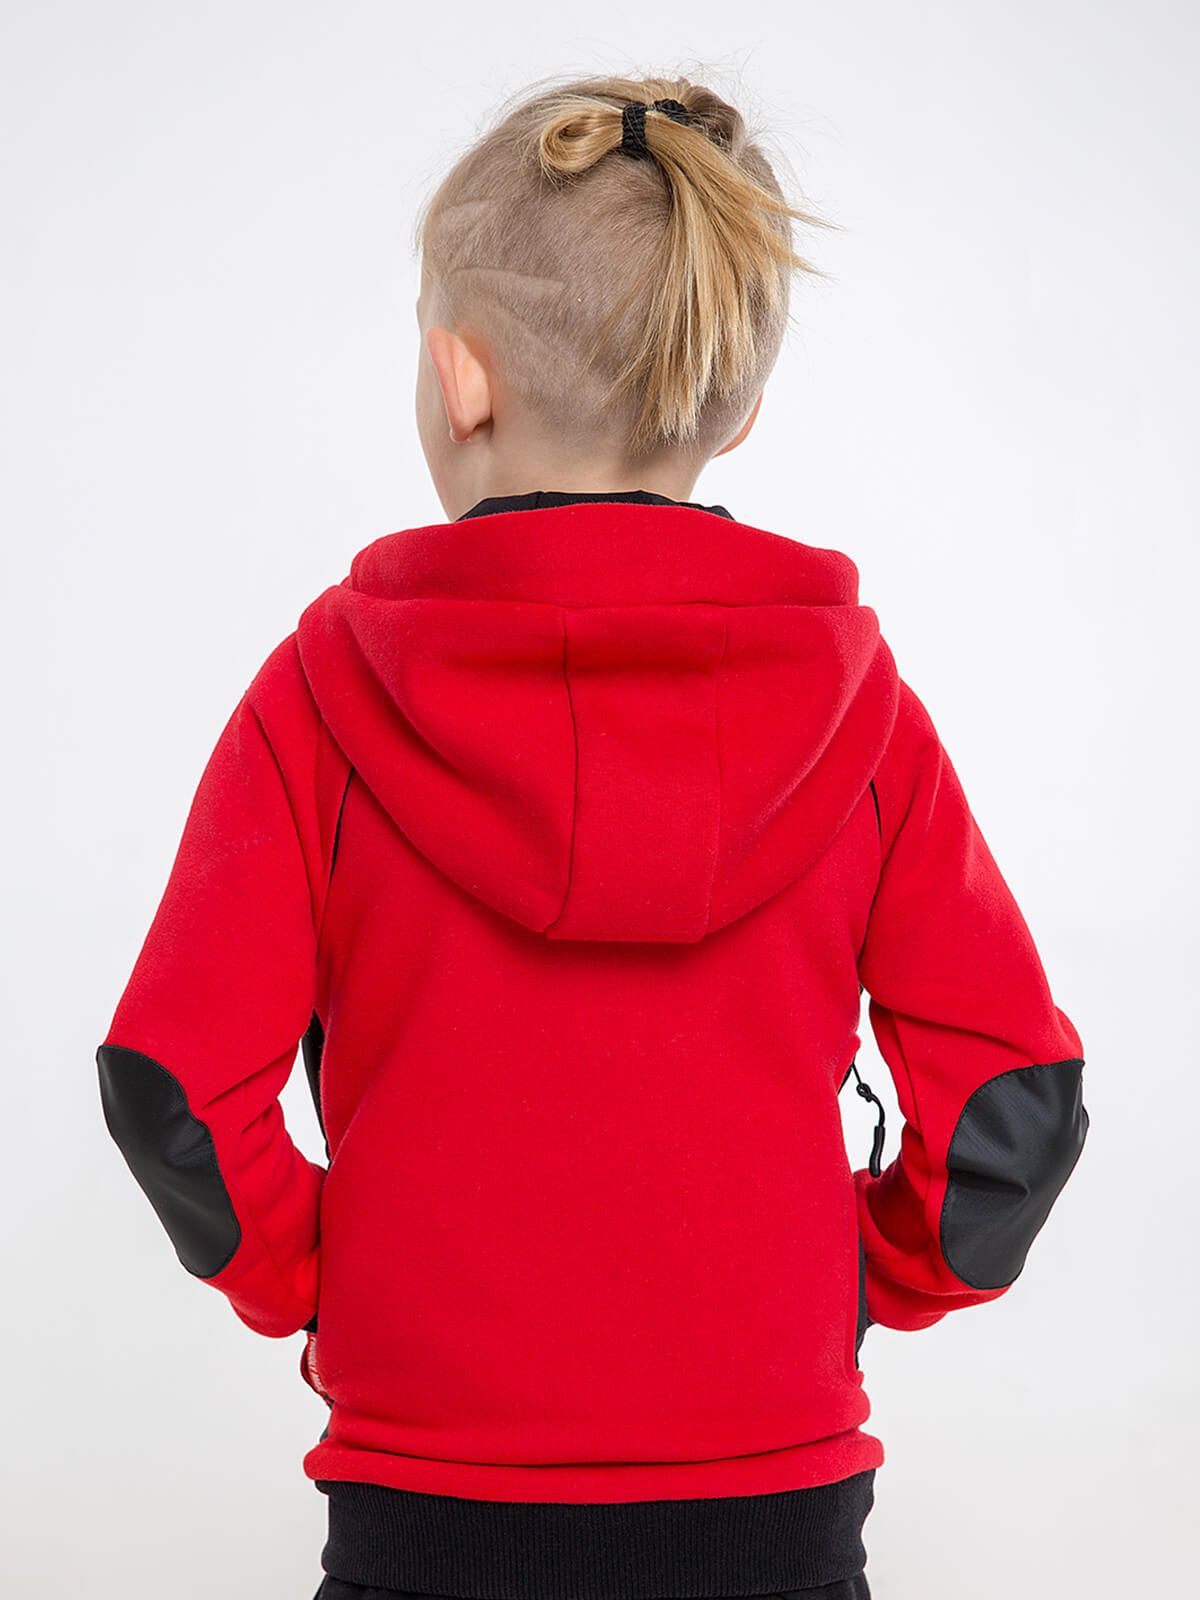 Kids Hoodie Syla. Color red.  Technique of prints applied: silkscreen printing, embroidery, chevrons.